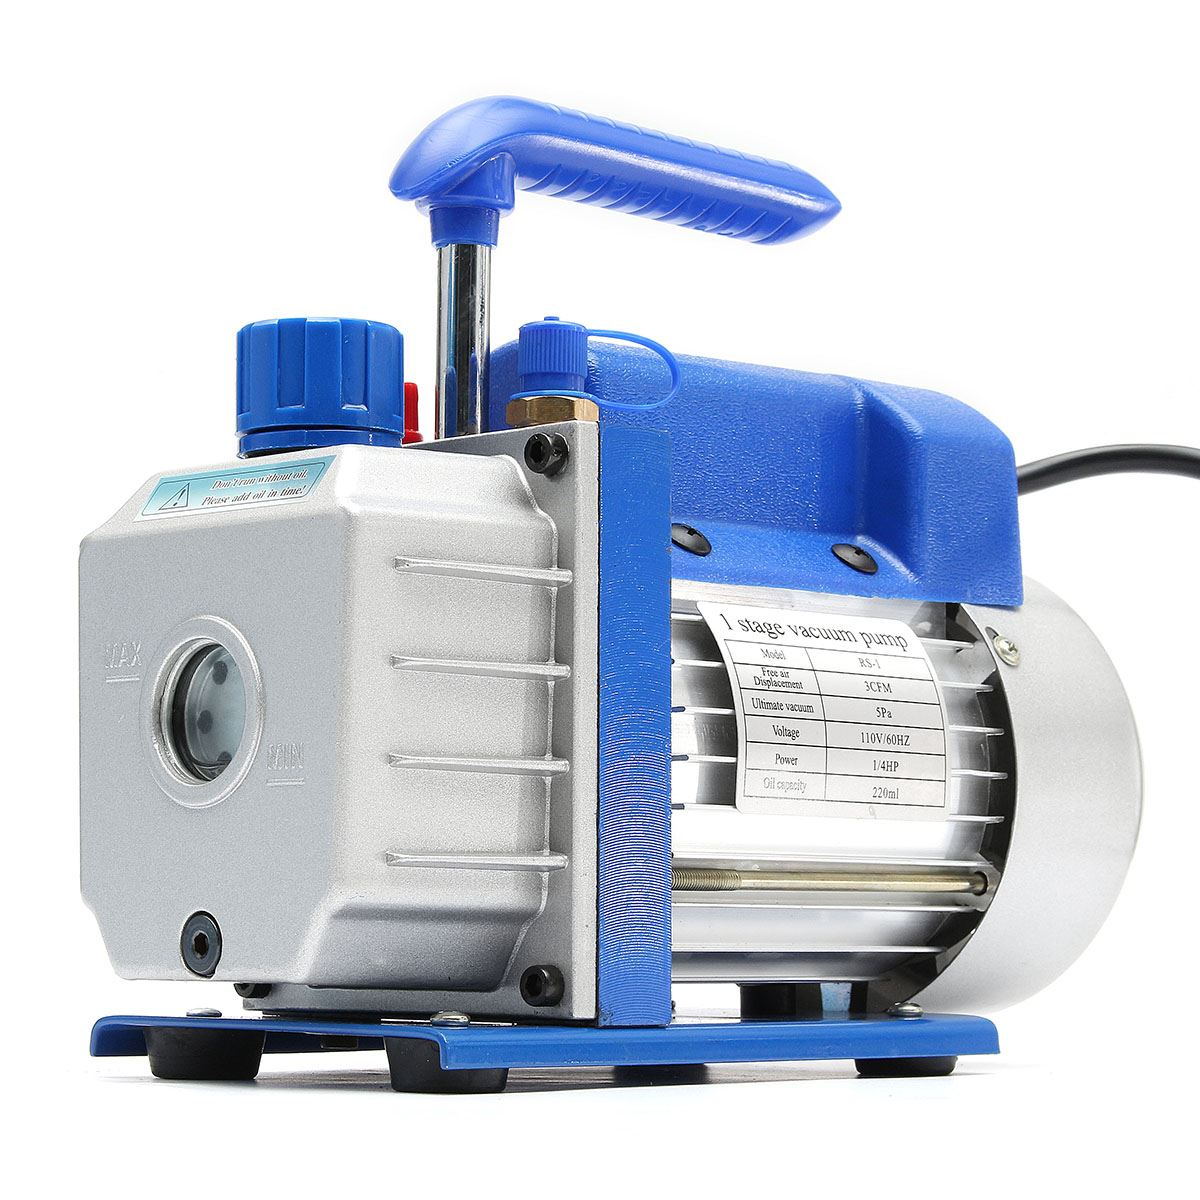 200ml 60HZ 3CFM 5Pa Single Stage Vacuum Pump Rotary Vane Low Pressure 1/4HP Air Conditioning Tool System Refrigeration Tools double stage 2cfm hvac ac air tool refrigeration rotary vane air vacuum pump 2xz 1